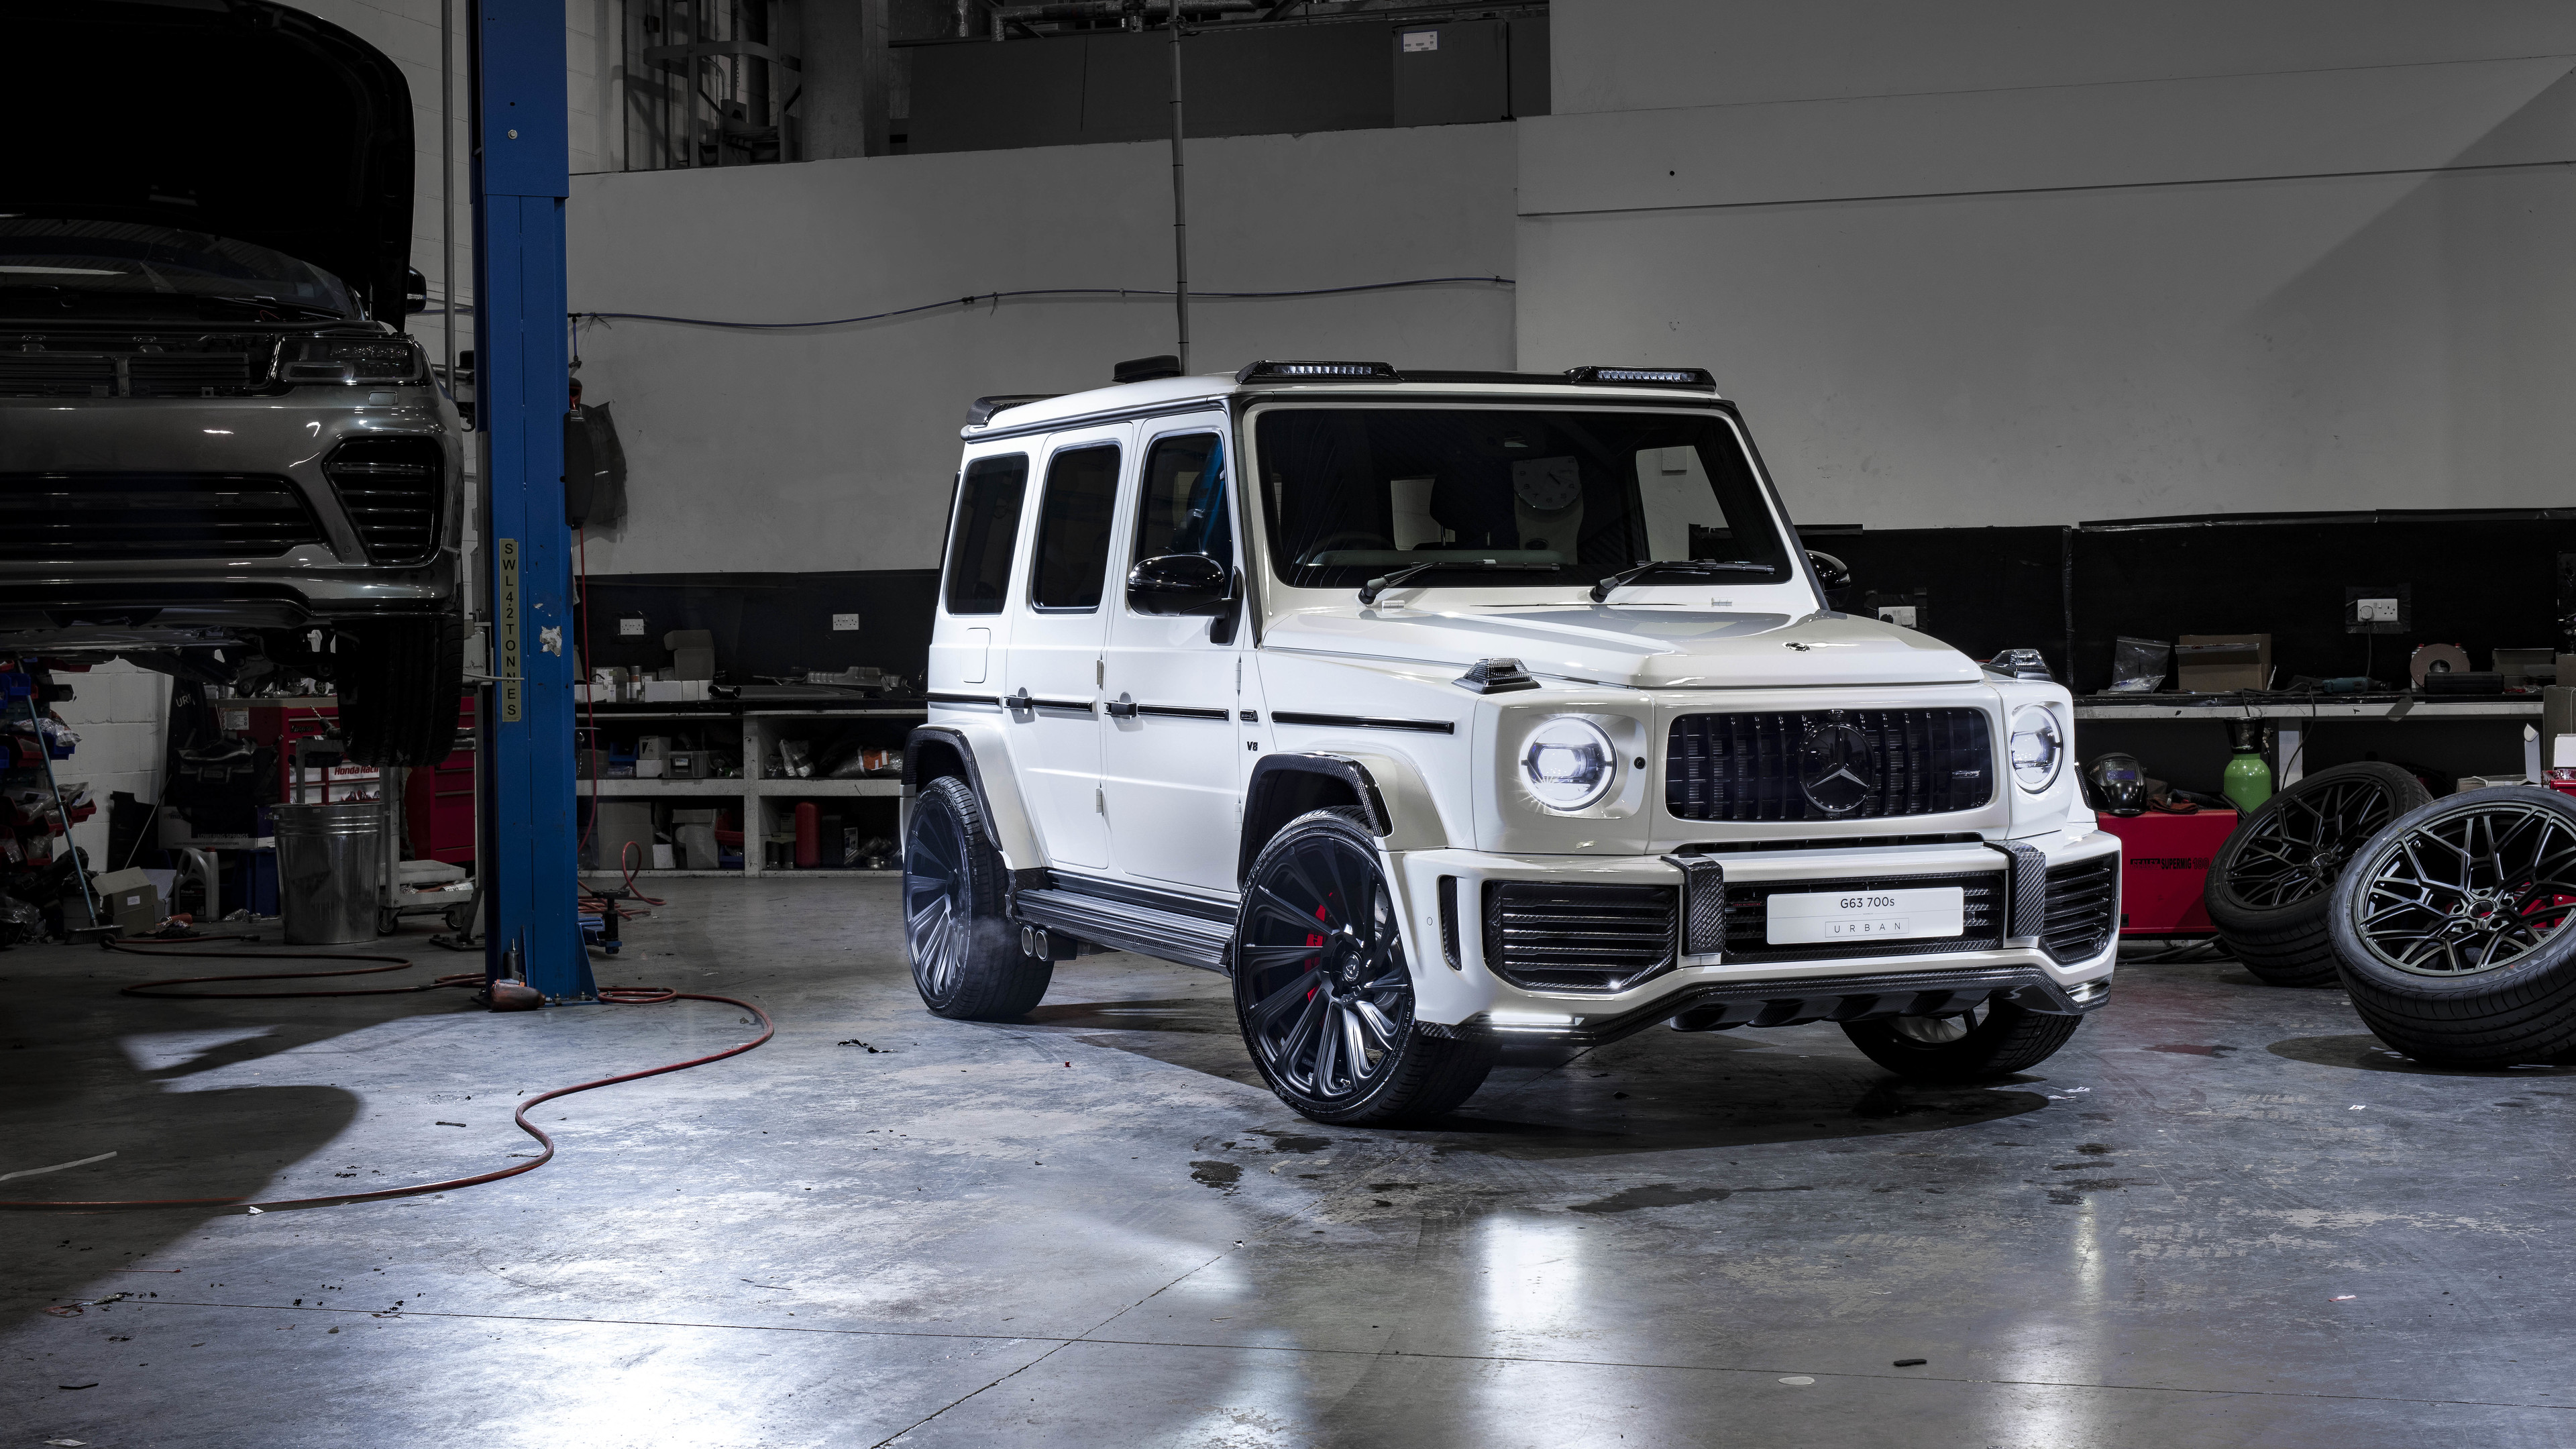 urban automotive mercedes amg g 63 2019 4k 1560534359 - Urban Automotive Mercedes AMG G 63 2019 4k - suv wallpapers, mercedes wallpapers, mercedes g class wallpapers, mercedes benz wallpapers, hd-wallpapers, cars wallpapers, 4k-wallpapers